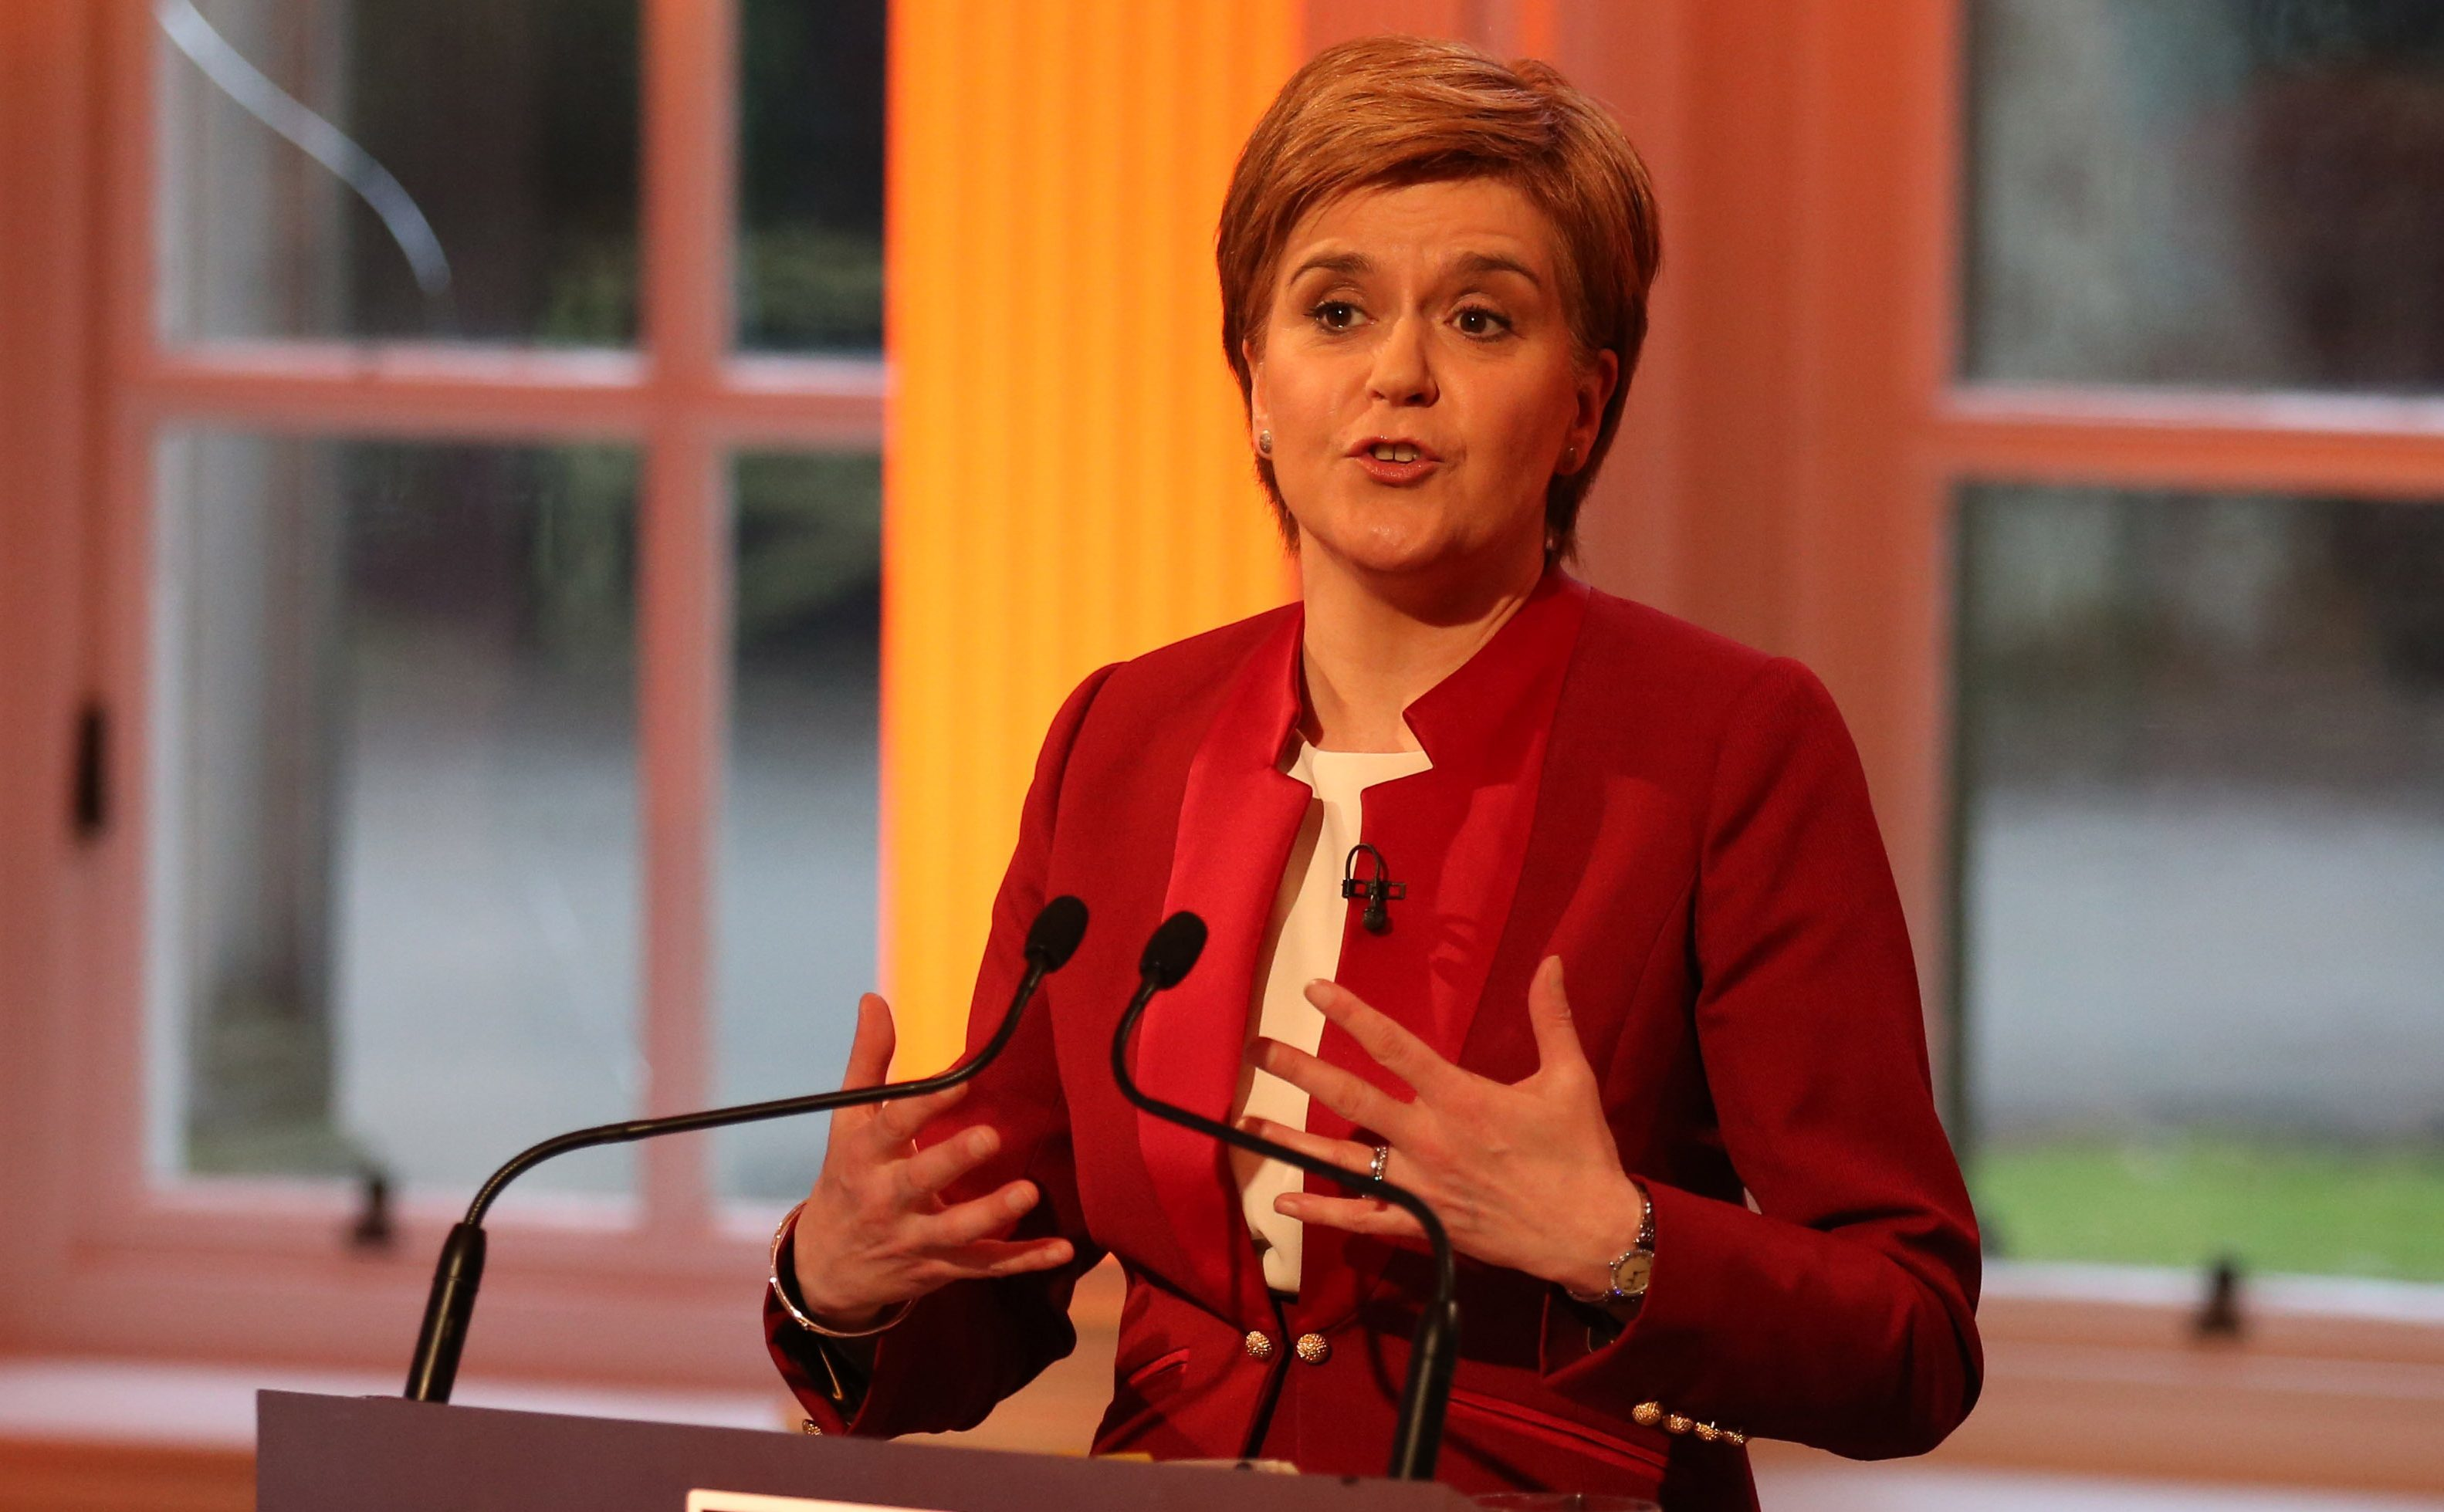 Scottish National Party leader Nicola Sturgeon during the TV debate.